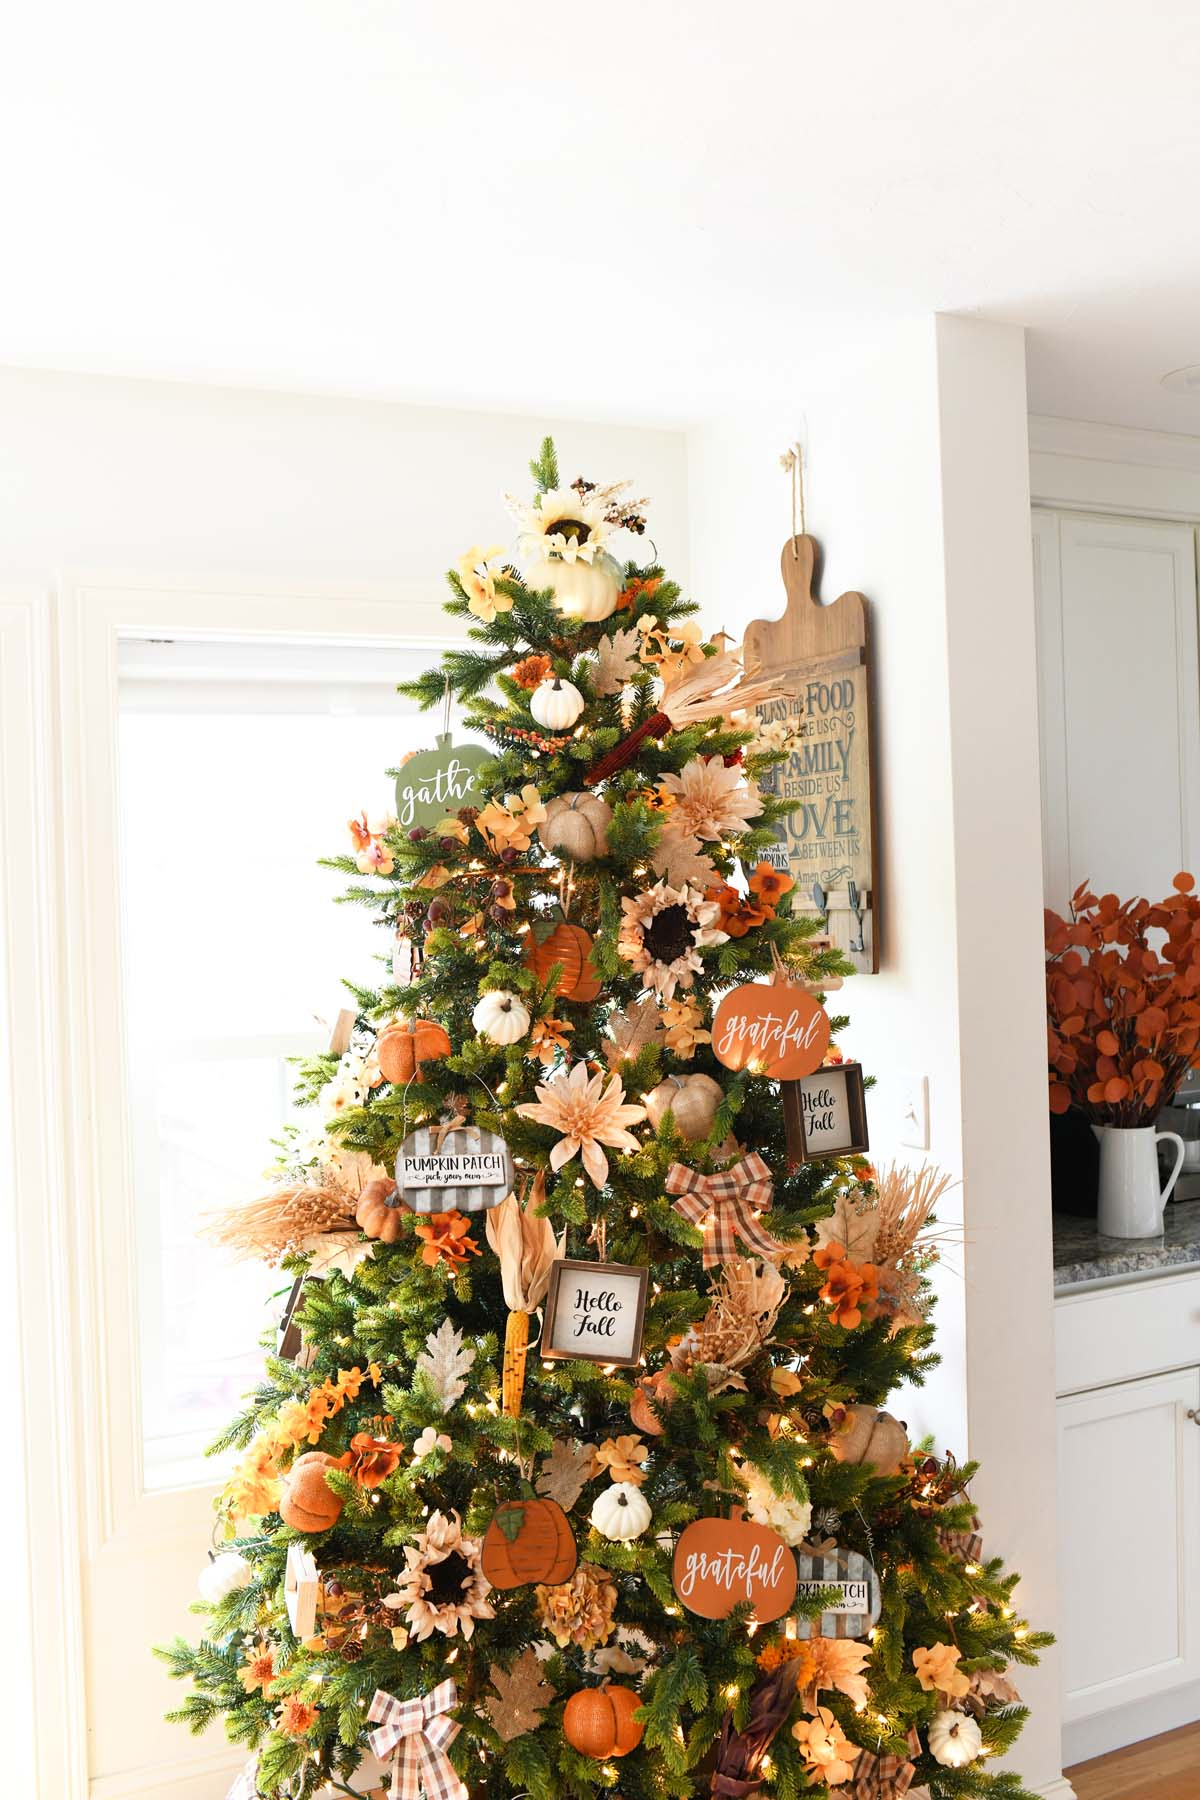 A close up shot of a Thanksgiving tree with pumpkin decor.